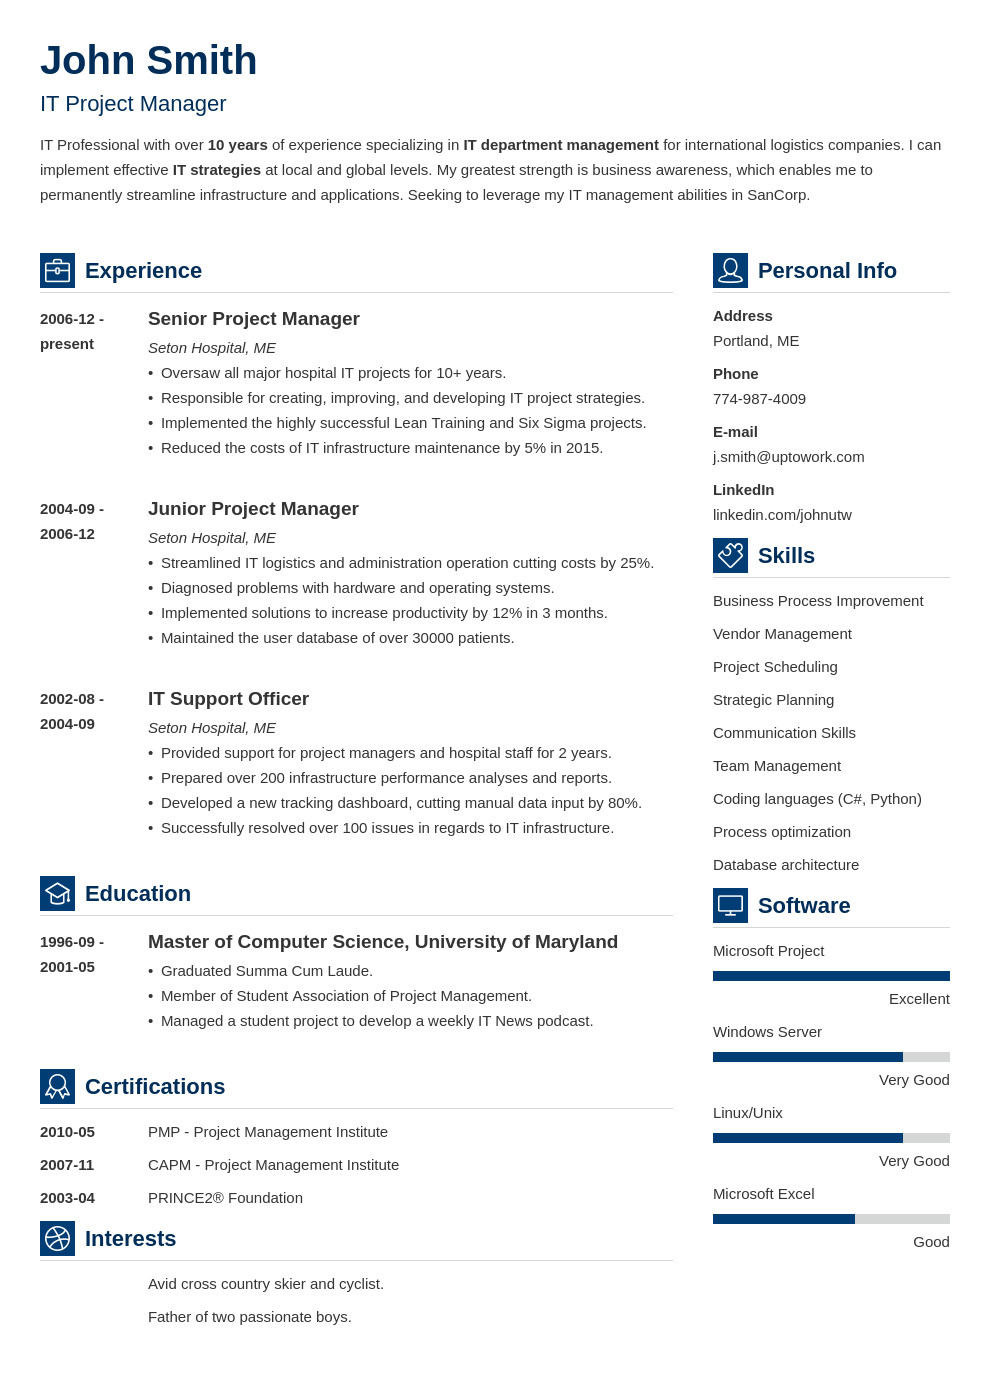 Free Sample Resume Templates 20 Resume Templates [download] Create Your Resume In 5